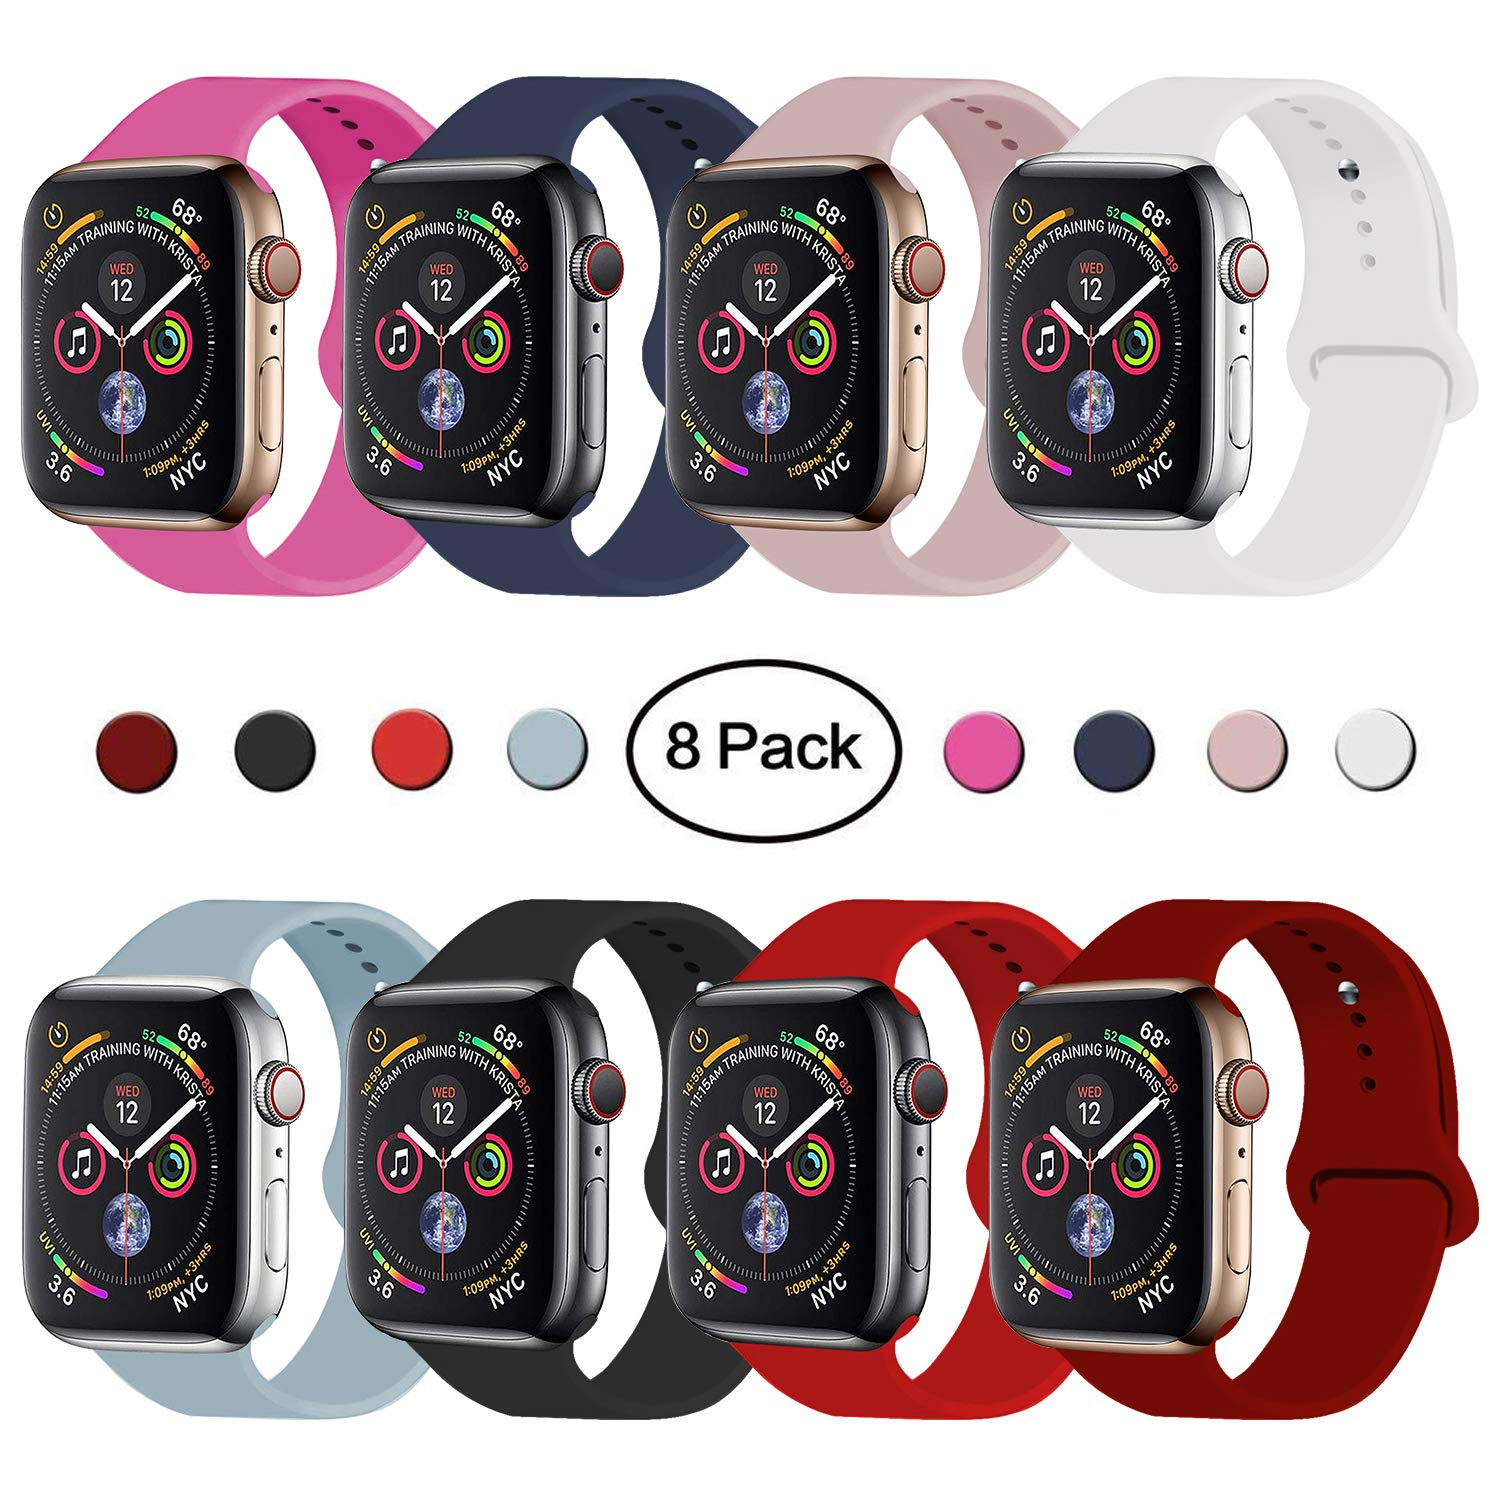 VATI Sport Band Compatible for Apple Watch Band 38mm 40mm, 8-Pack Soft Silicone Sport Strap Replacement Bands Compatible with 2018 iWatch Apple Watch Series 4/3/2/1, 38MM 40MM S/M by VATI